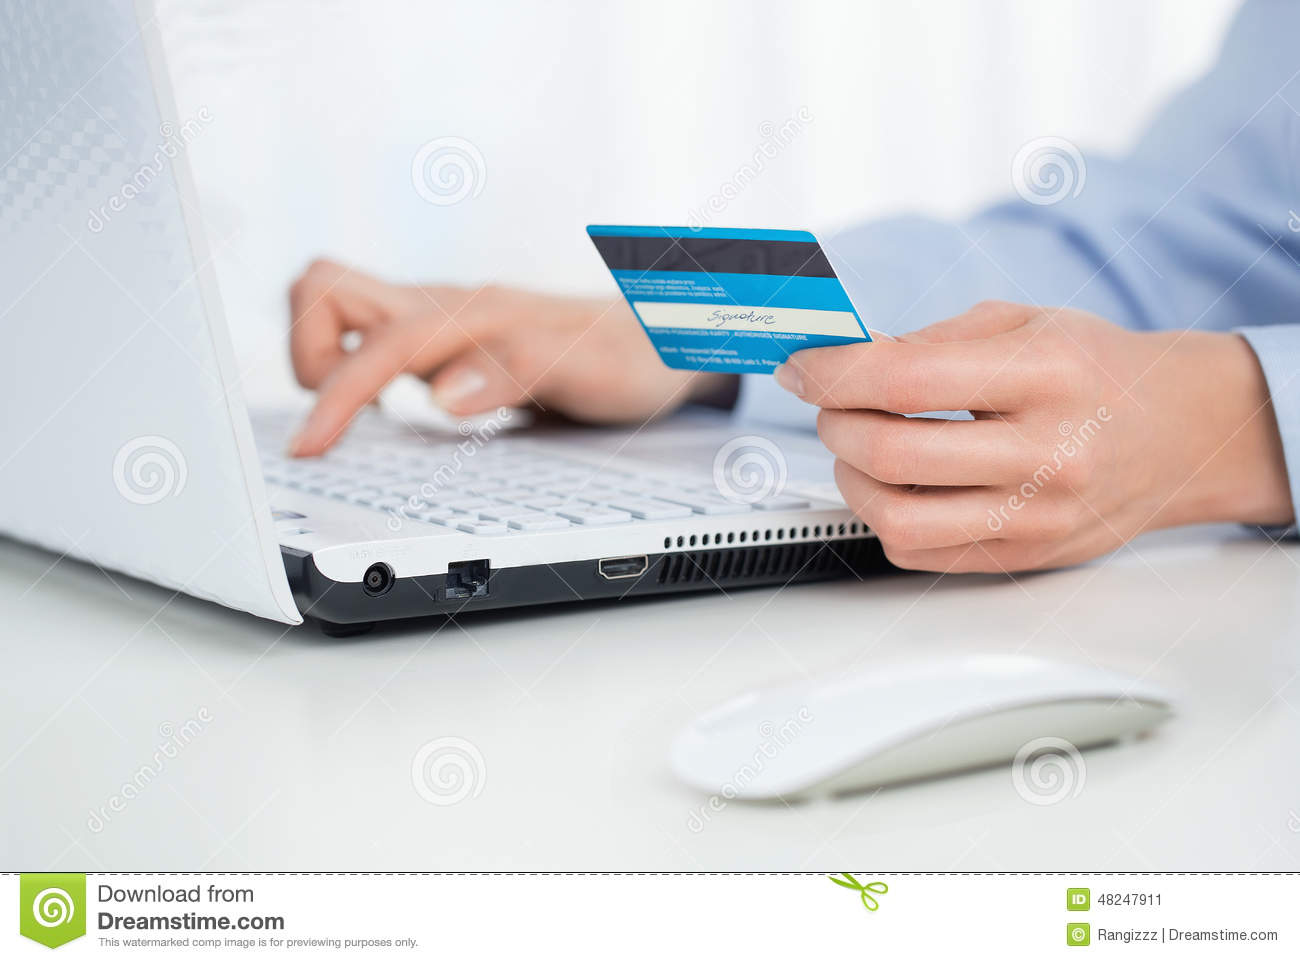 how to set up westpac internet banking